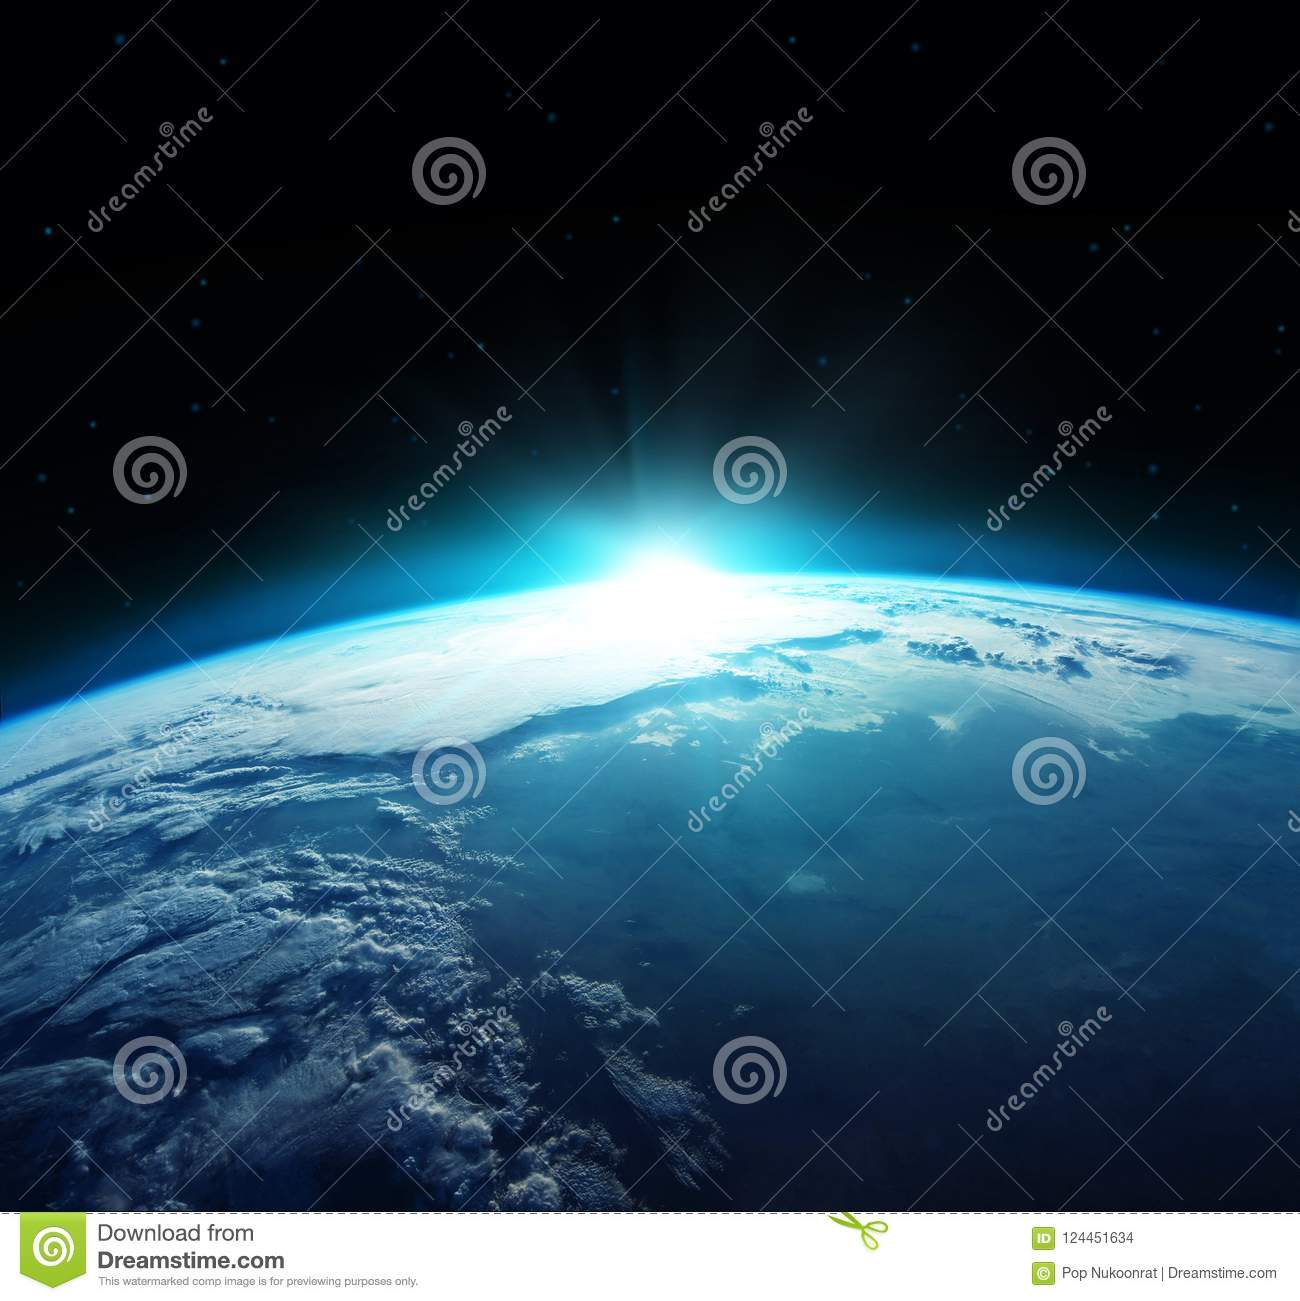 View of blue planet Earth with sun rising from space. Elements of this image furnished by NASA